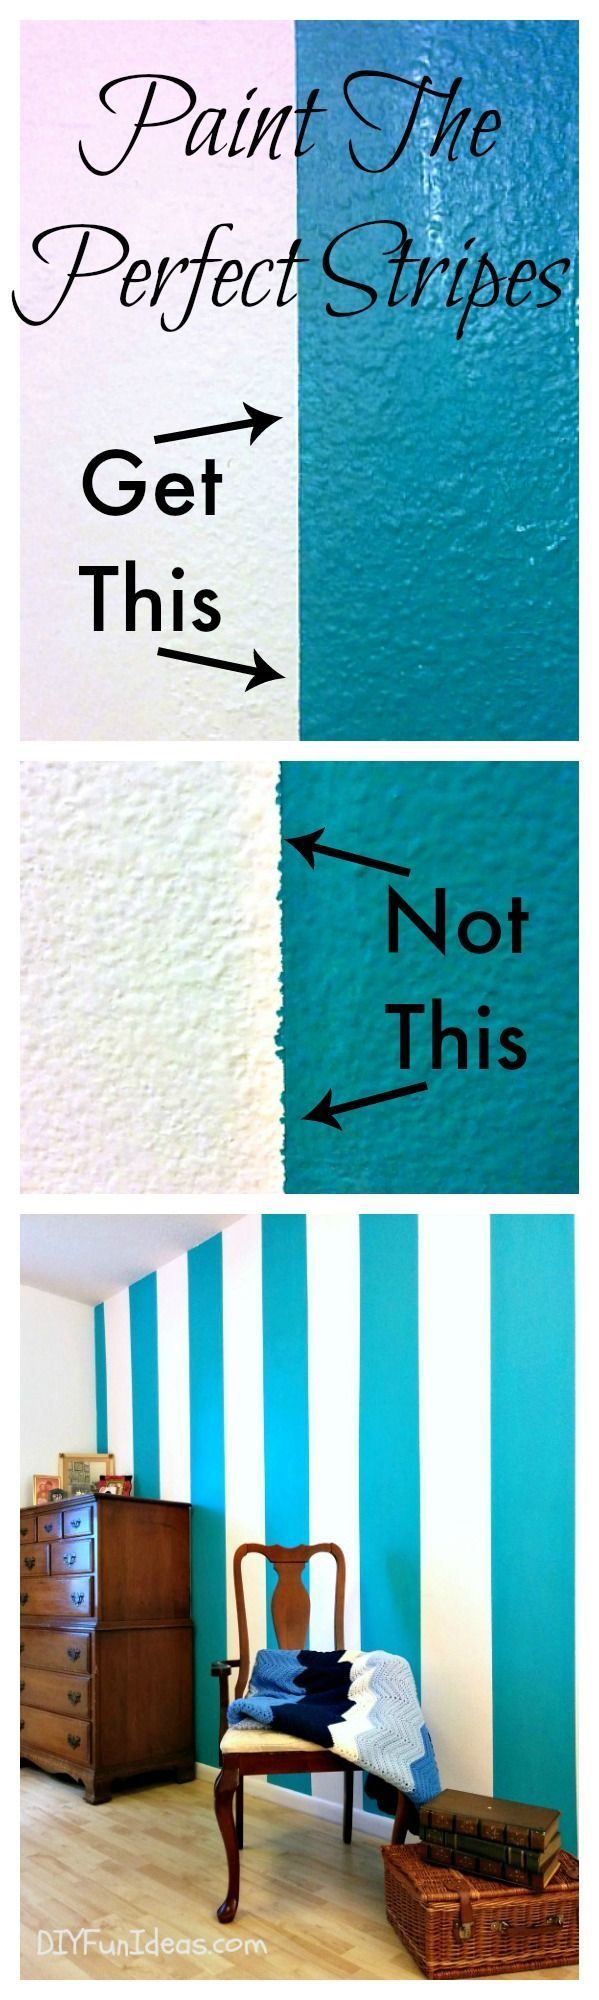 Wall paint patterns stripes - Add Some Bright Colors For Spring With These Simple Tricks For Painting The Perfect Stripes